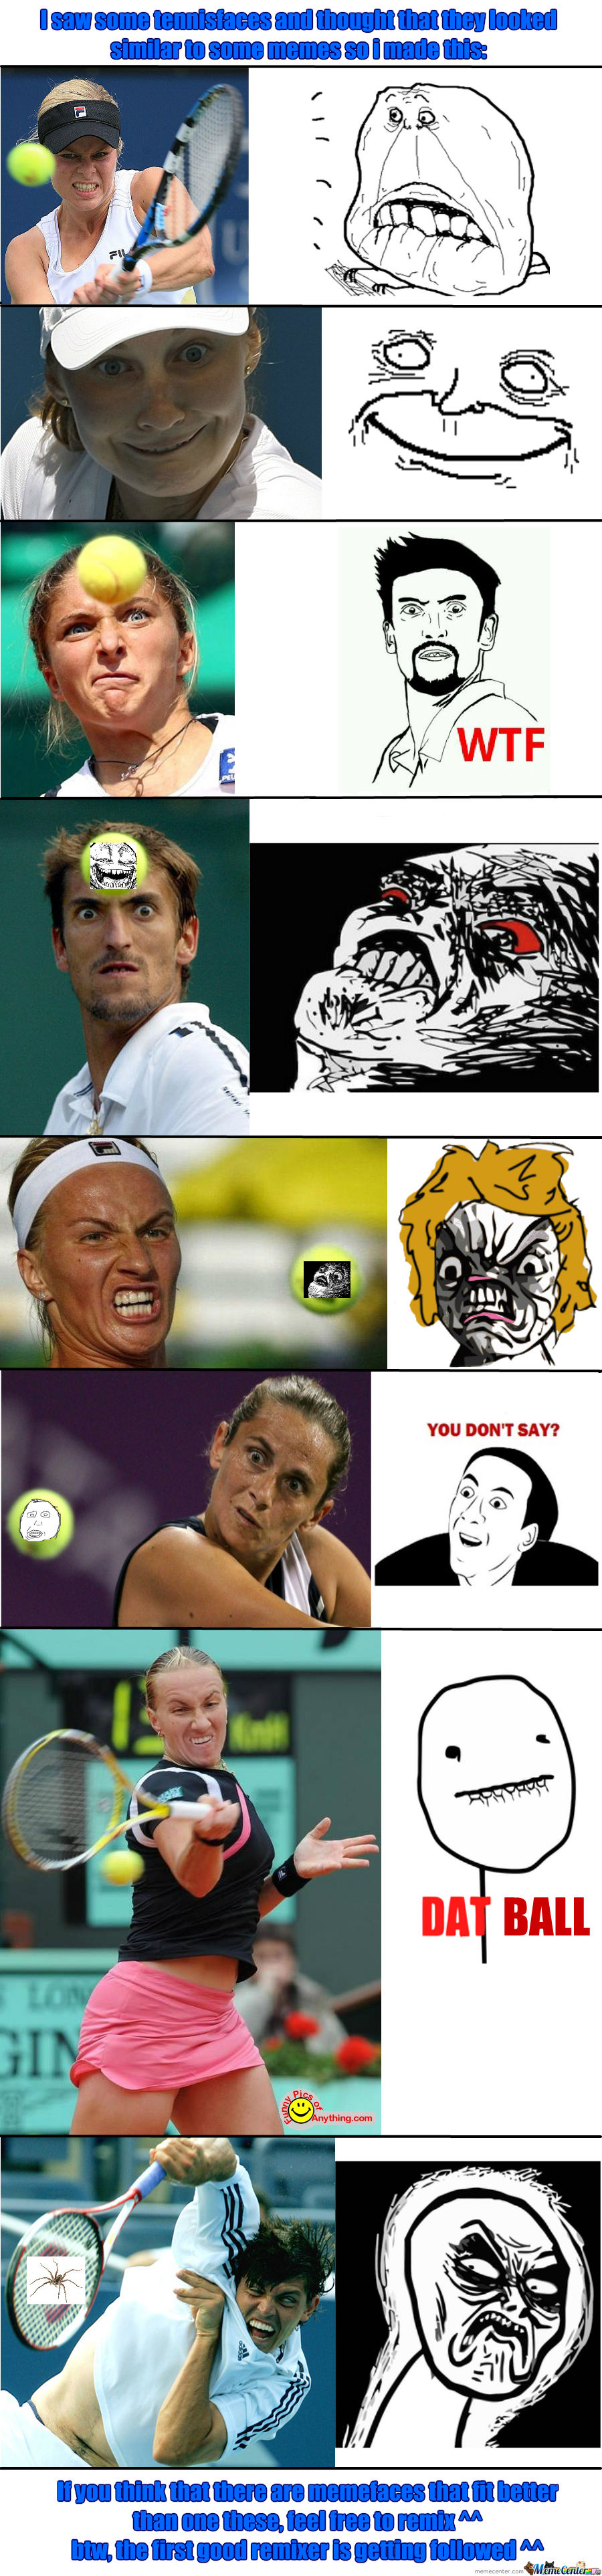 Sometimes I Think We Should Just Stop And Appreciate All The Faces Tennis Has To Offer Us.